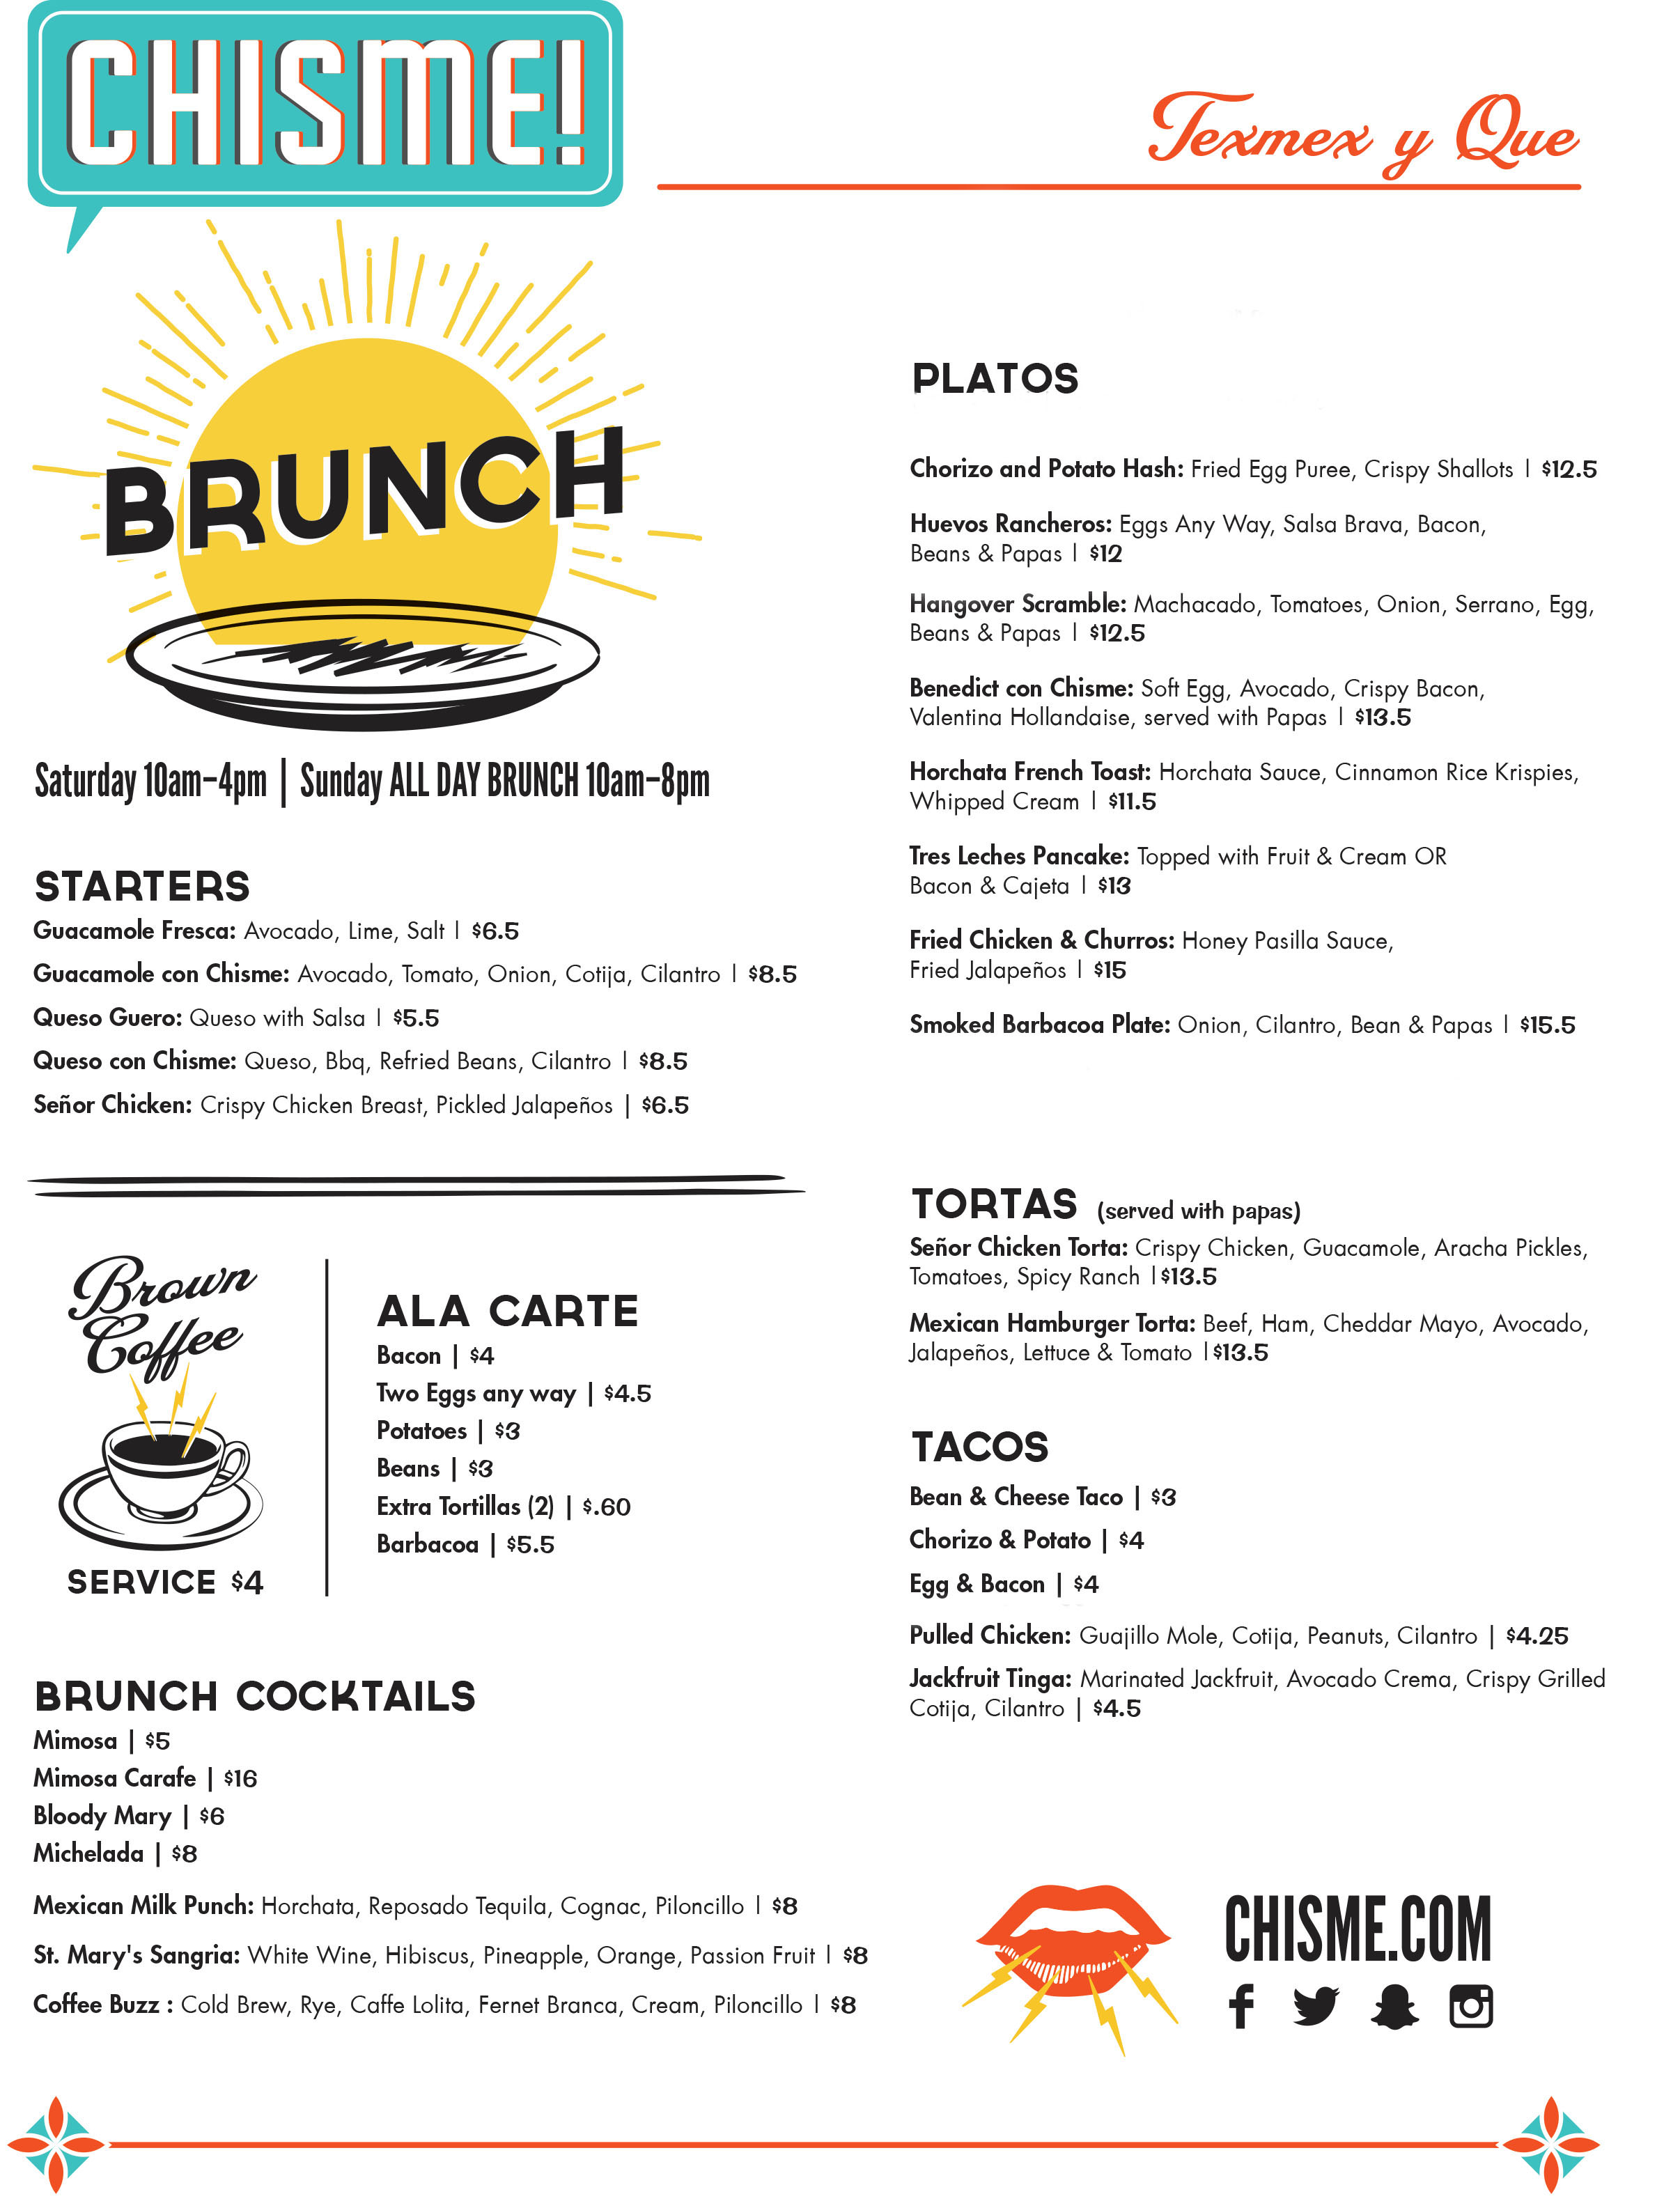 Join us for BRUNCH!  Saturday from 10am - 4pm & ALL day on Sunday!